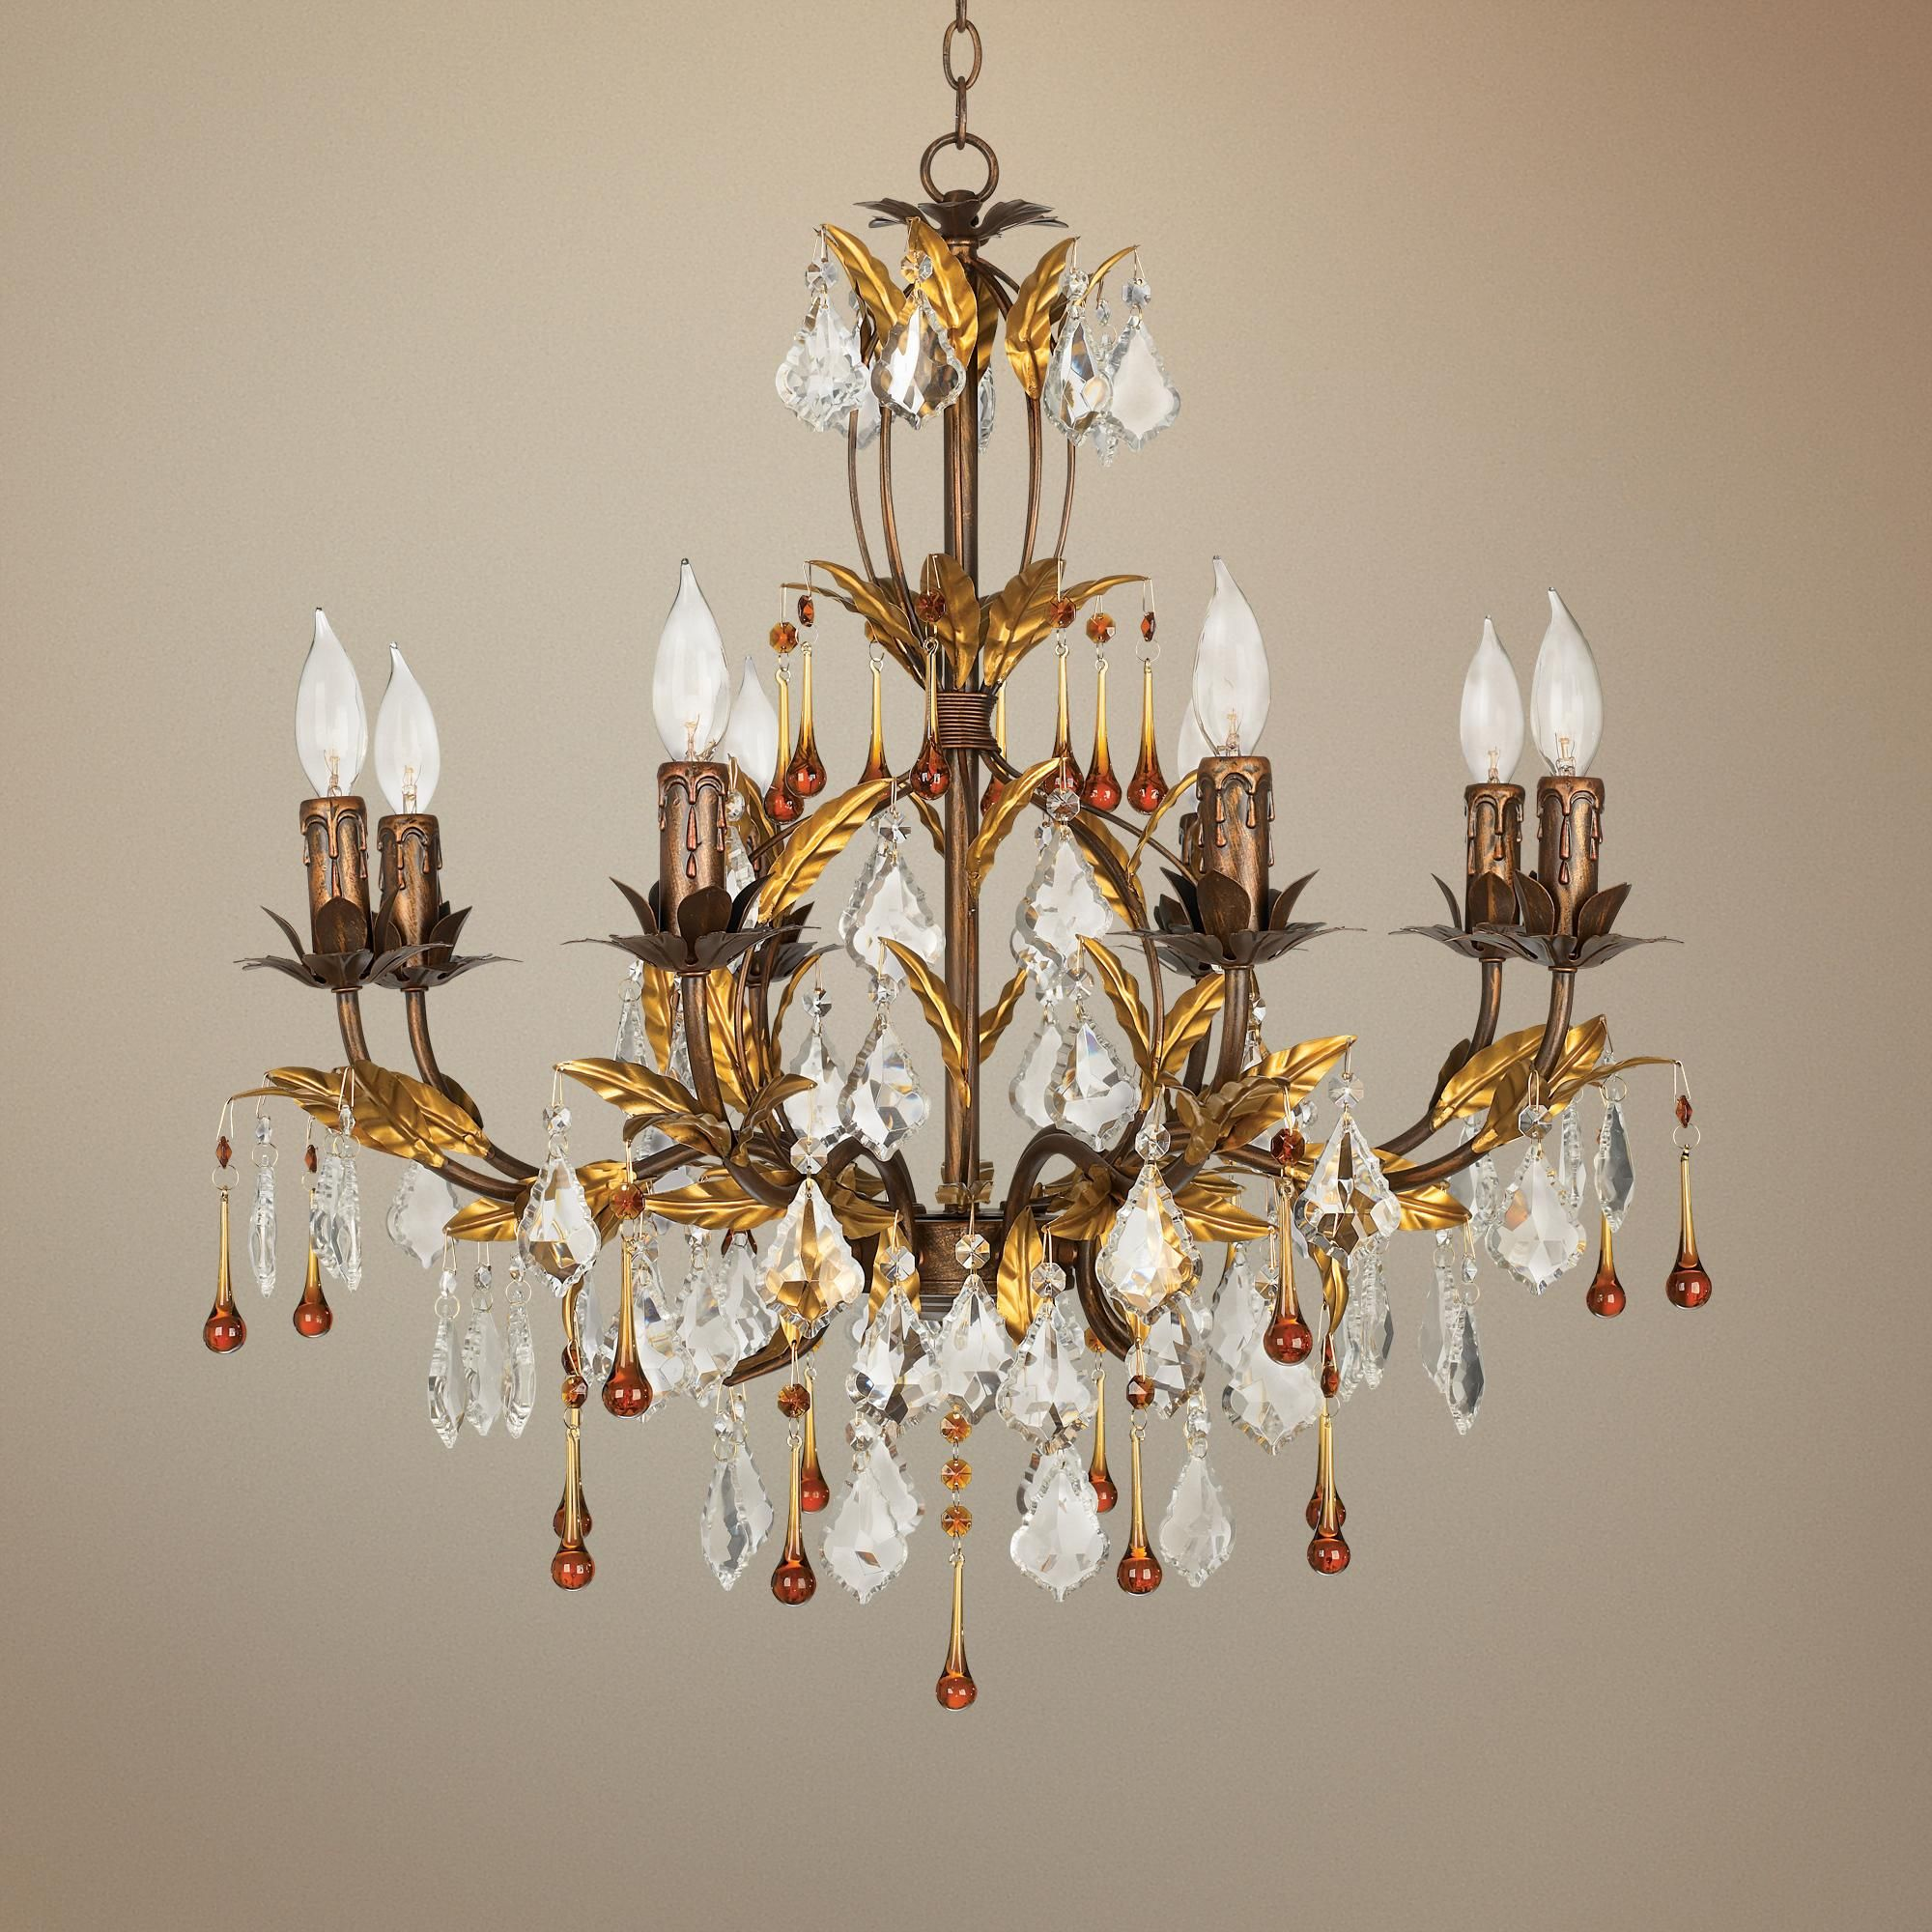 Kathy Ireland Venezia Gold 8 Light 26 Wide Chandelier